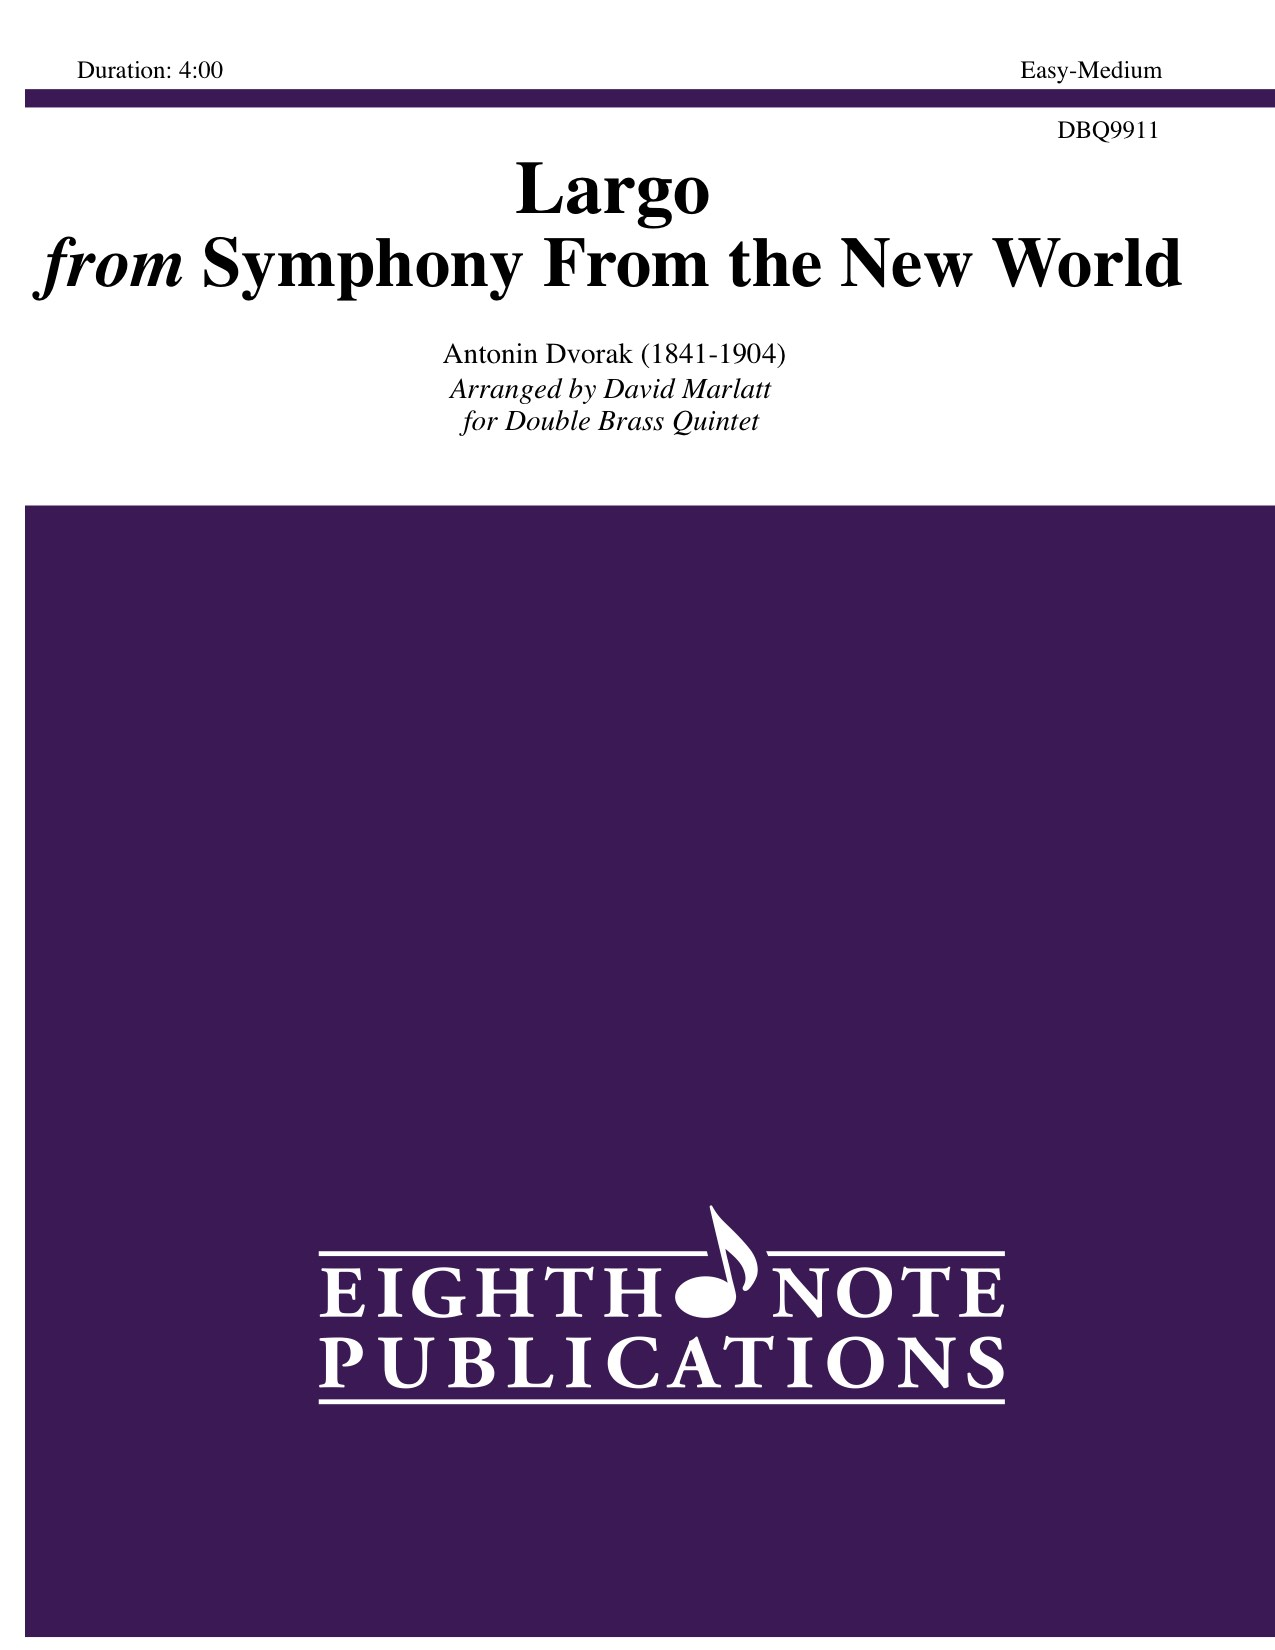 Largo from Symphony From the New World   - Antonin Dvorak